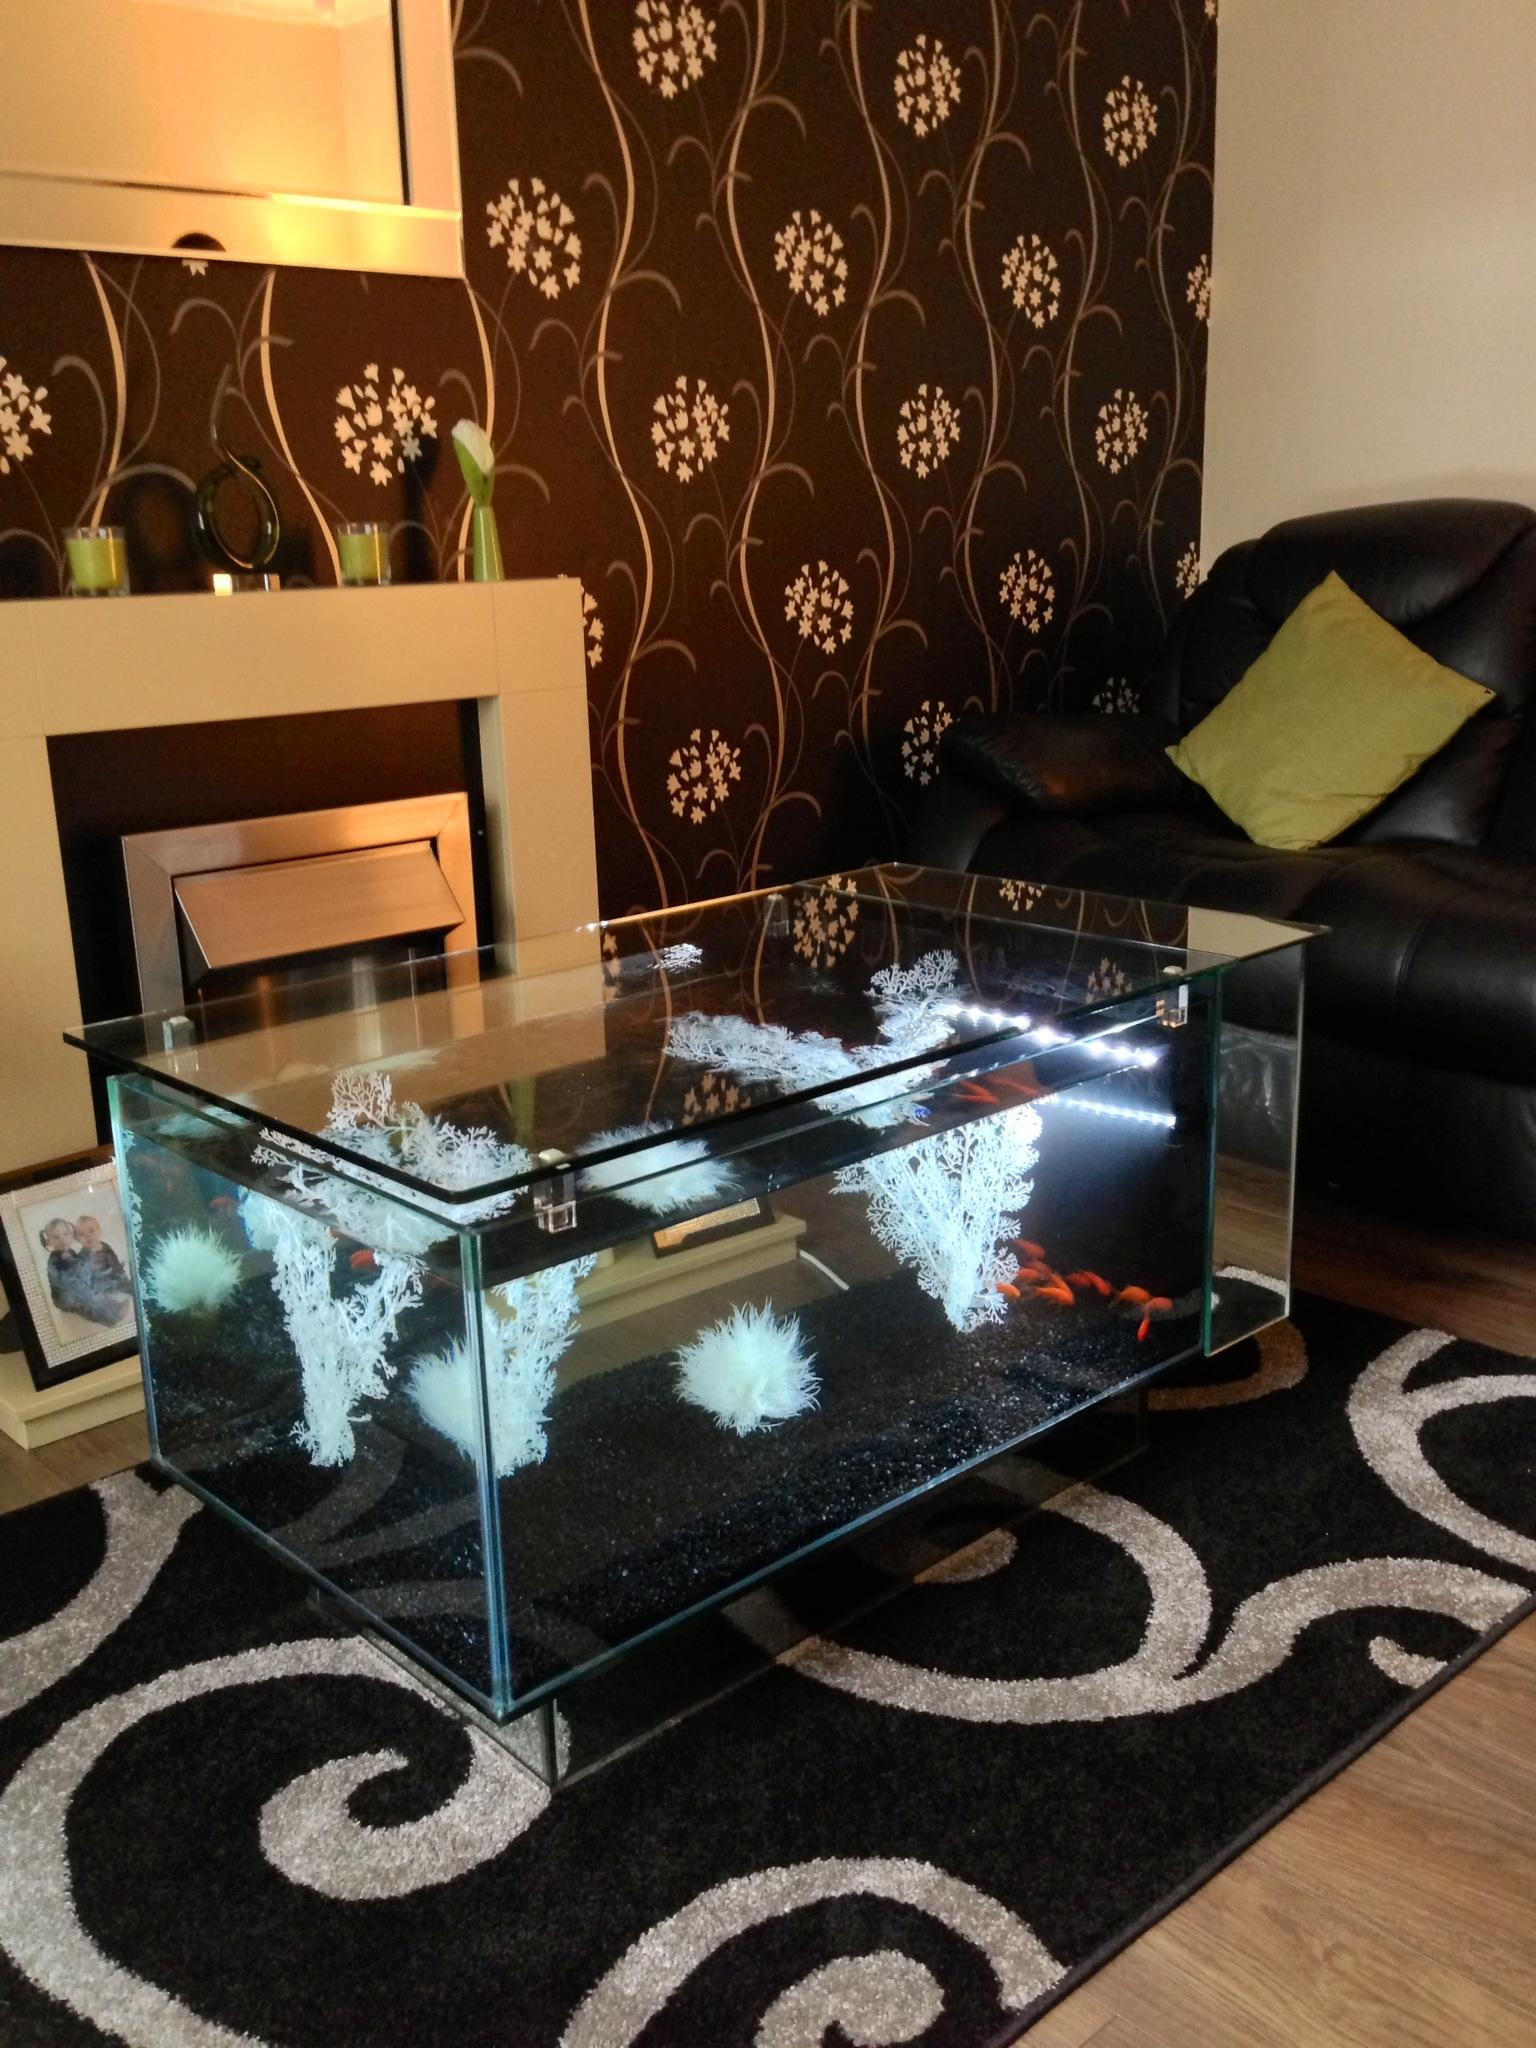 Tropical Table Aquarium - Click for Details | Bespoke Designer ...